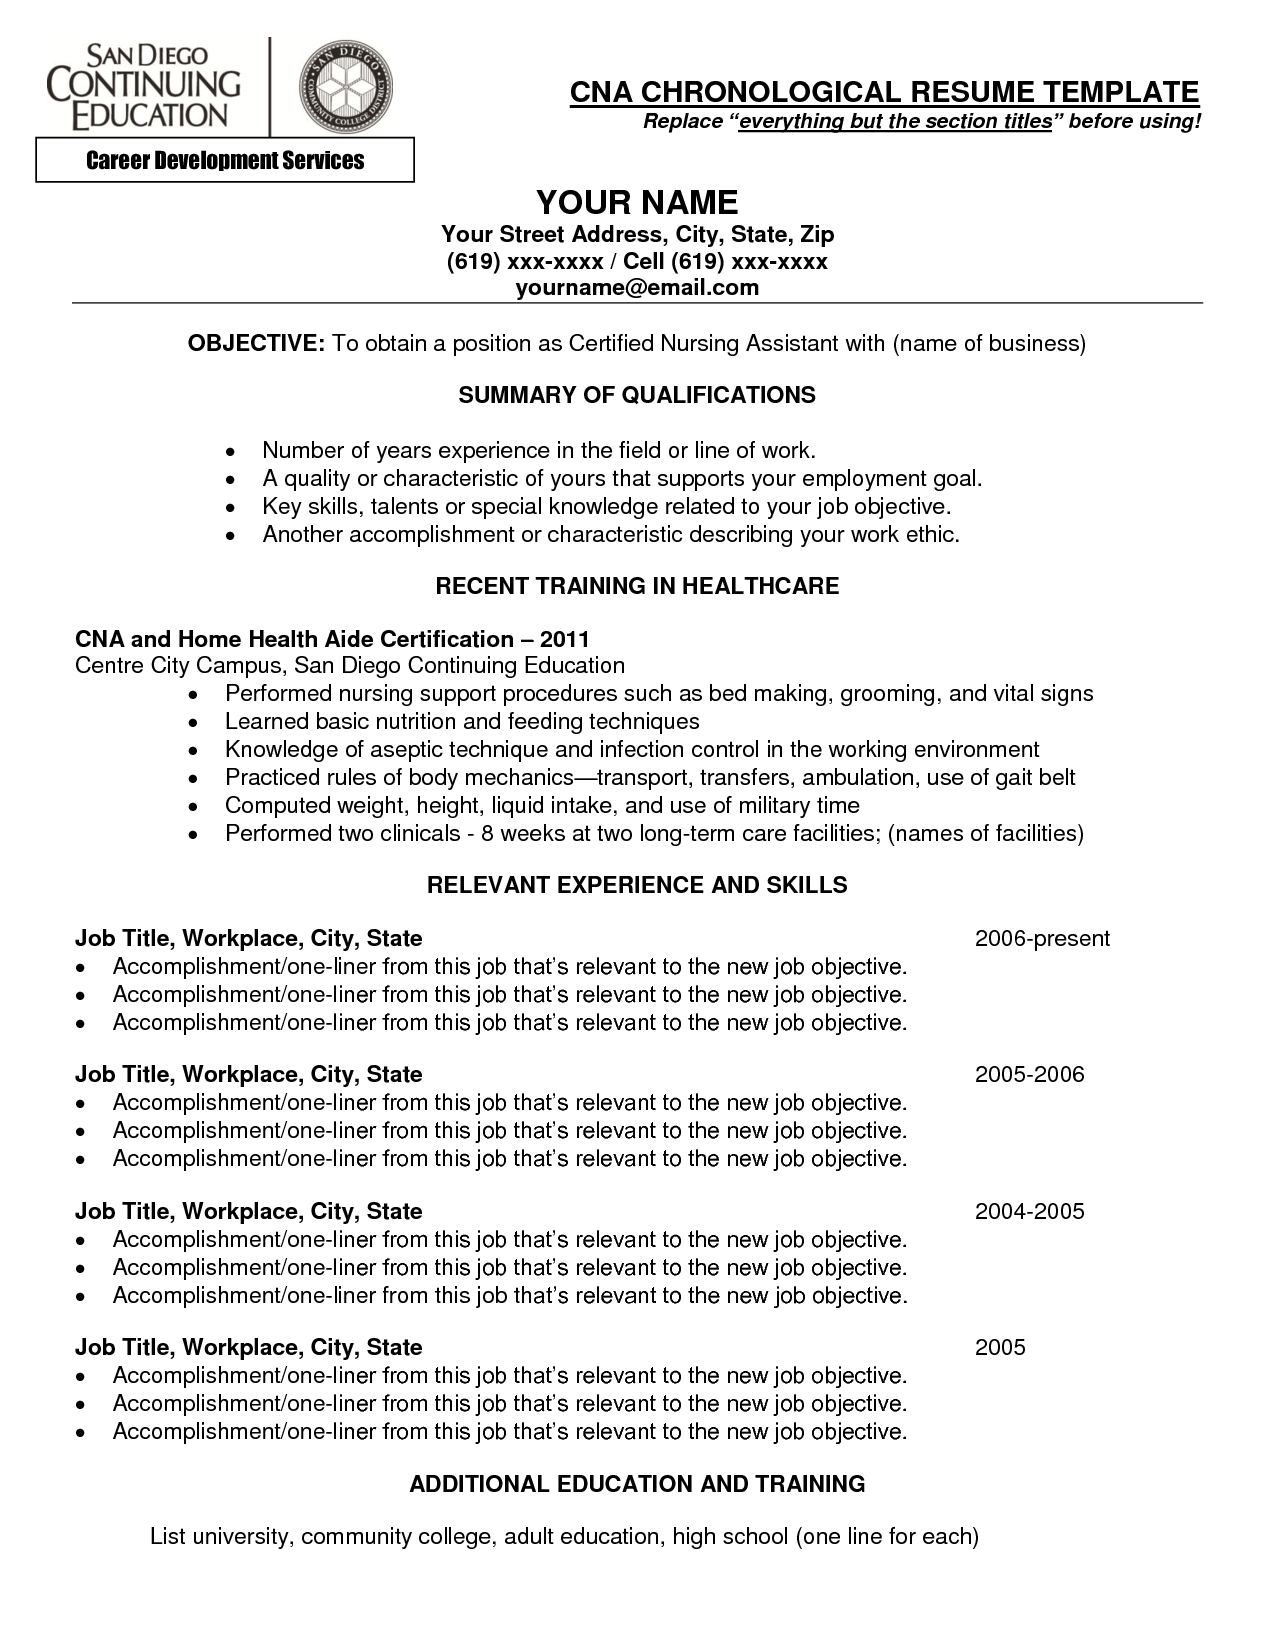 resume Examples Of Cna Resumes a strangely funny russian genius by ian frazier the new york cna resume examples with experience resume